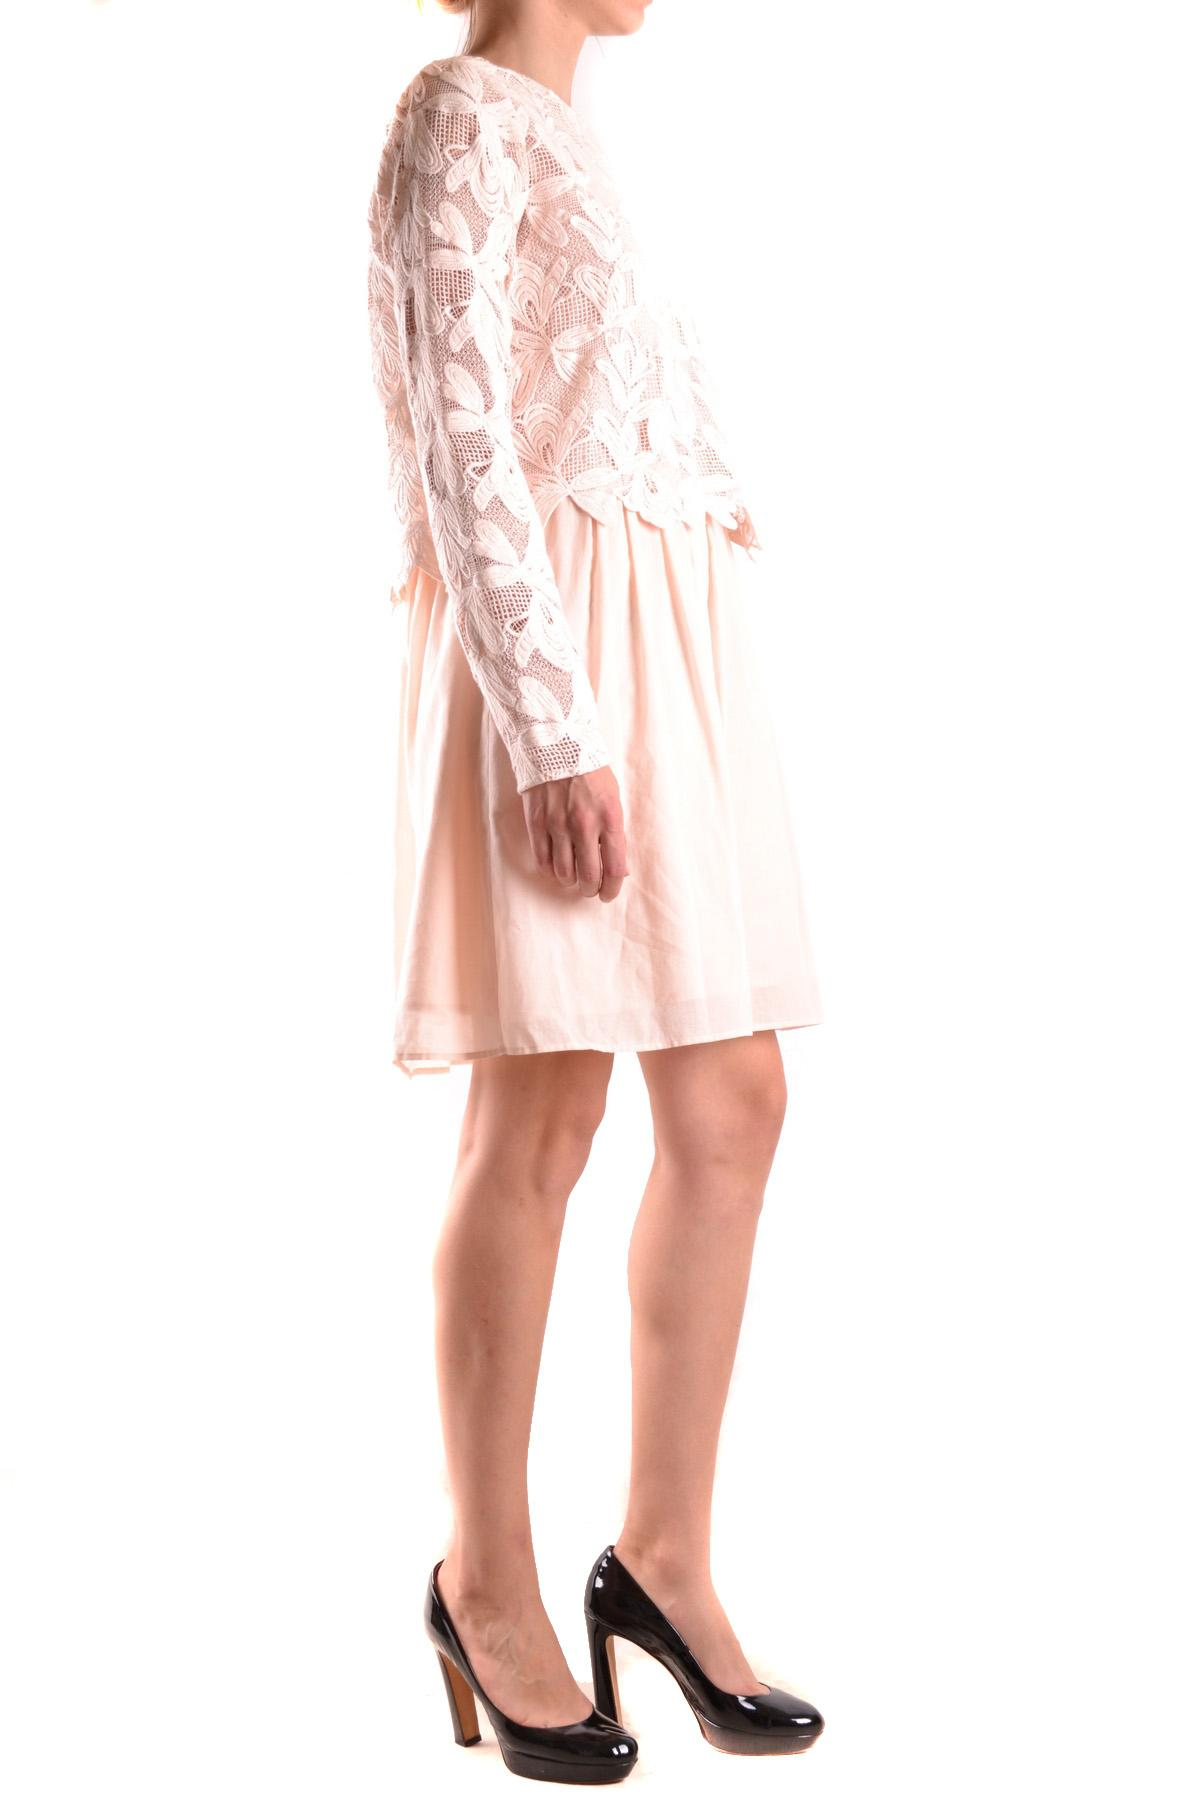 1b838e9f567e Lyst - See By Chloé See By Chloè Dress in Pink